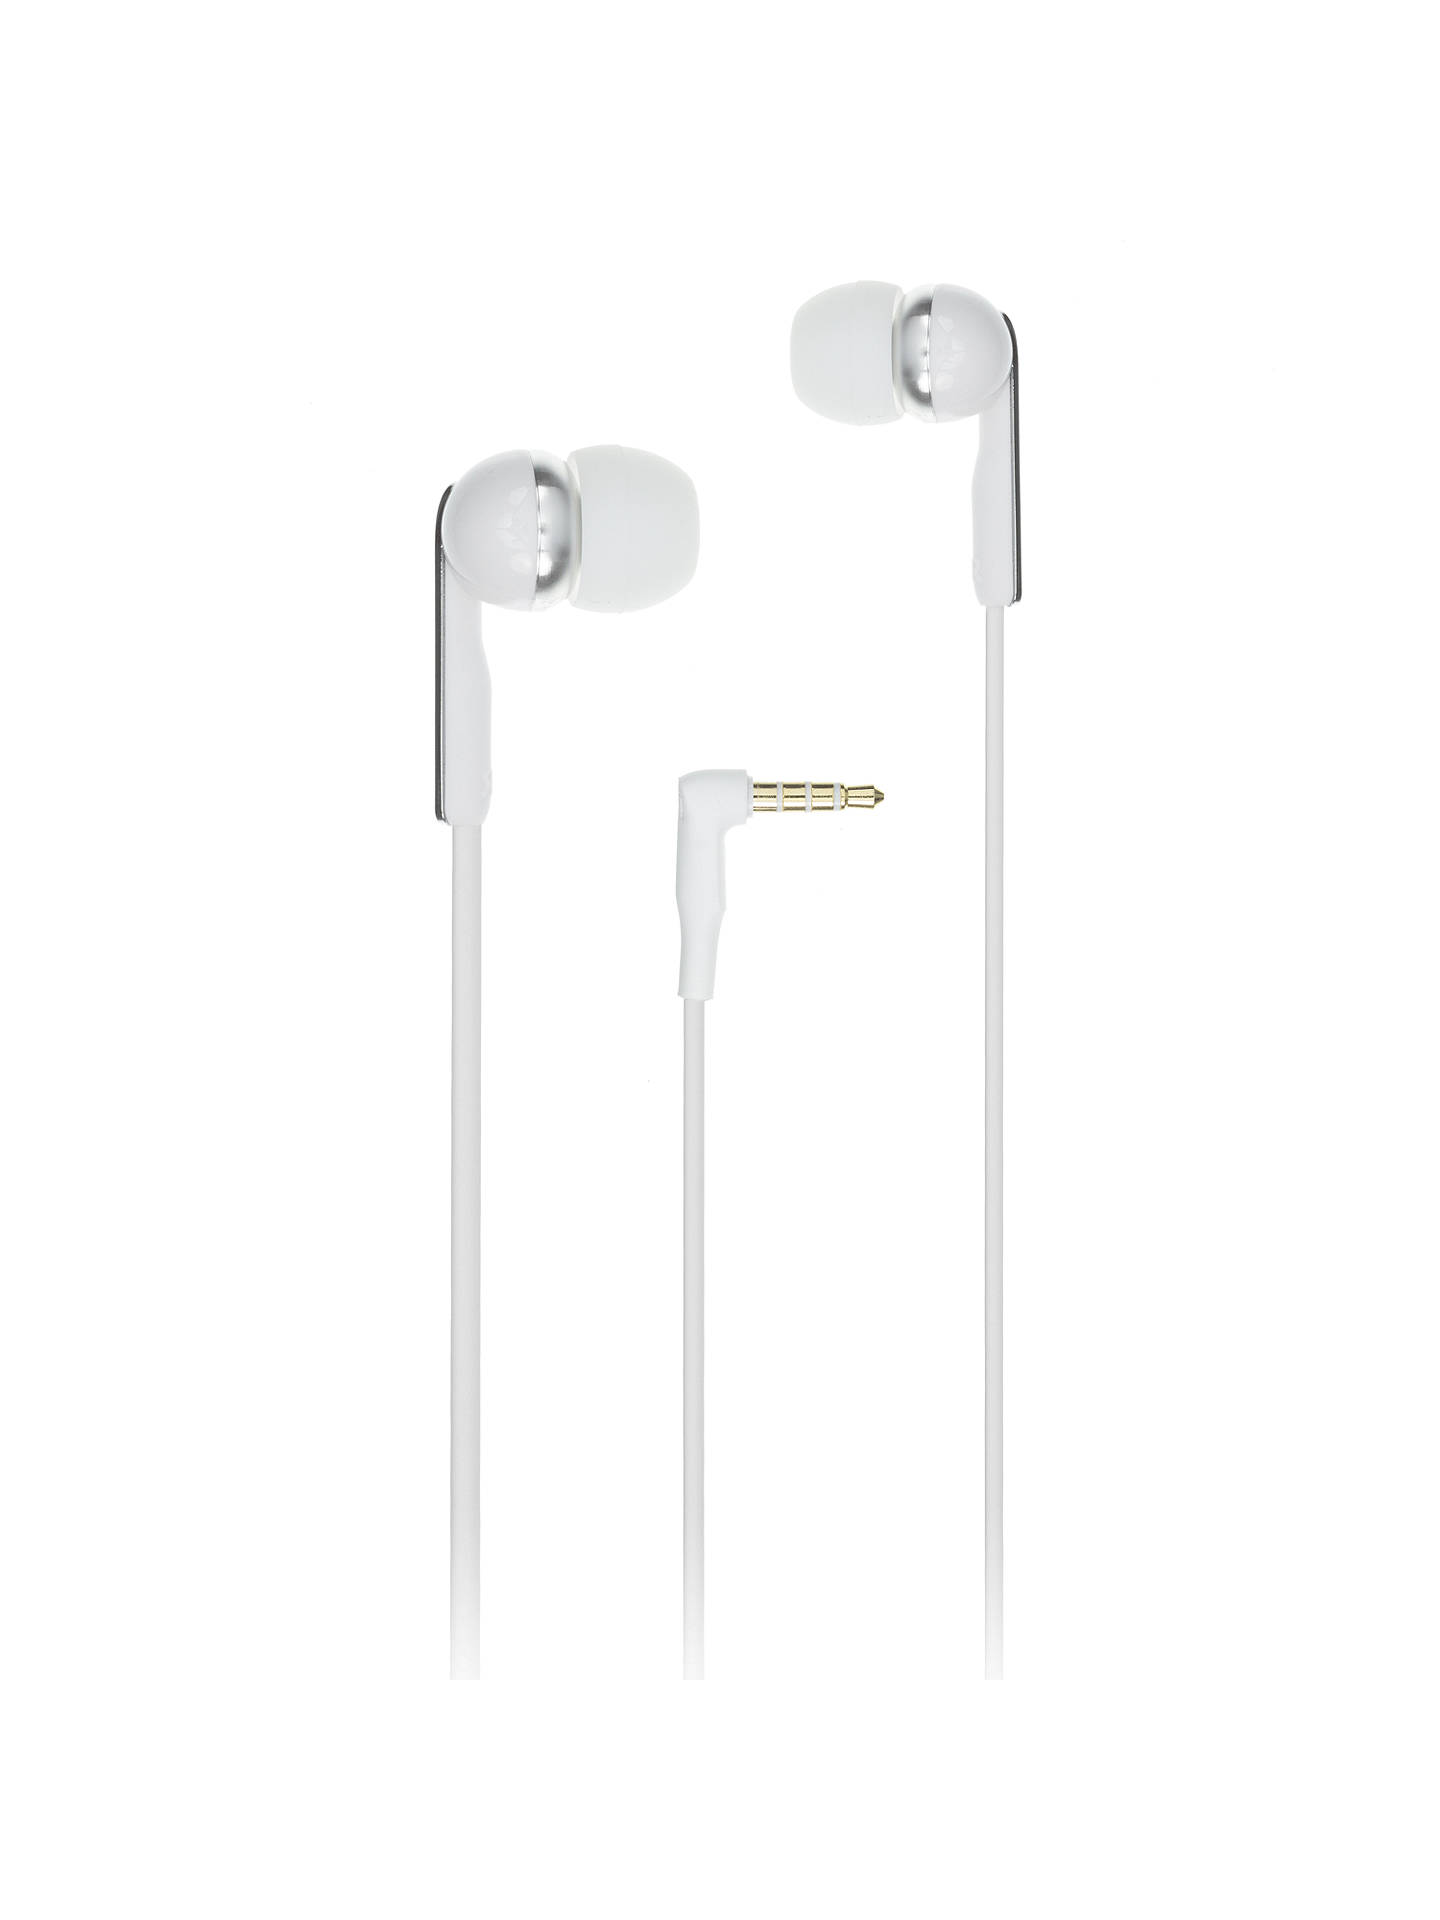 Buy Sennheiser CX 2.00 I In-Ear Headphones with Mic/Remote, White Online at johnlewis.com